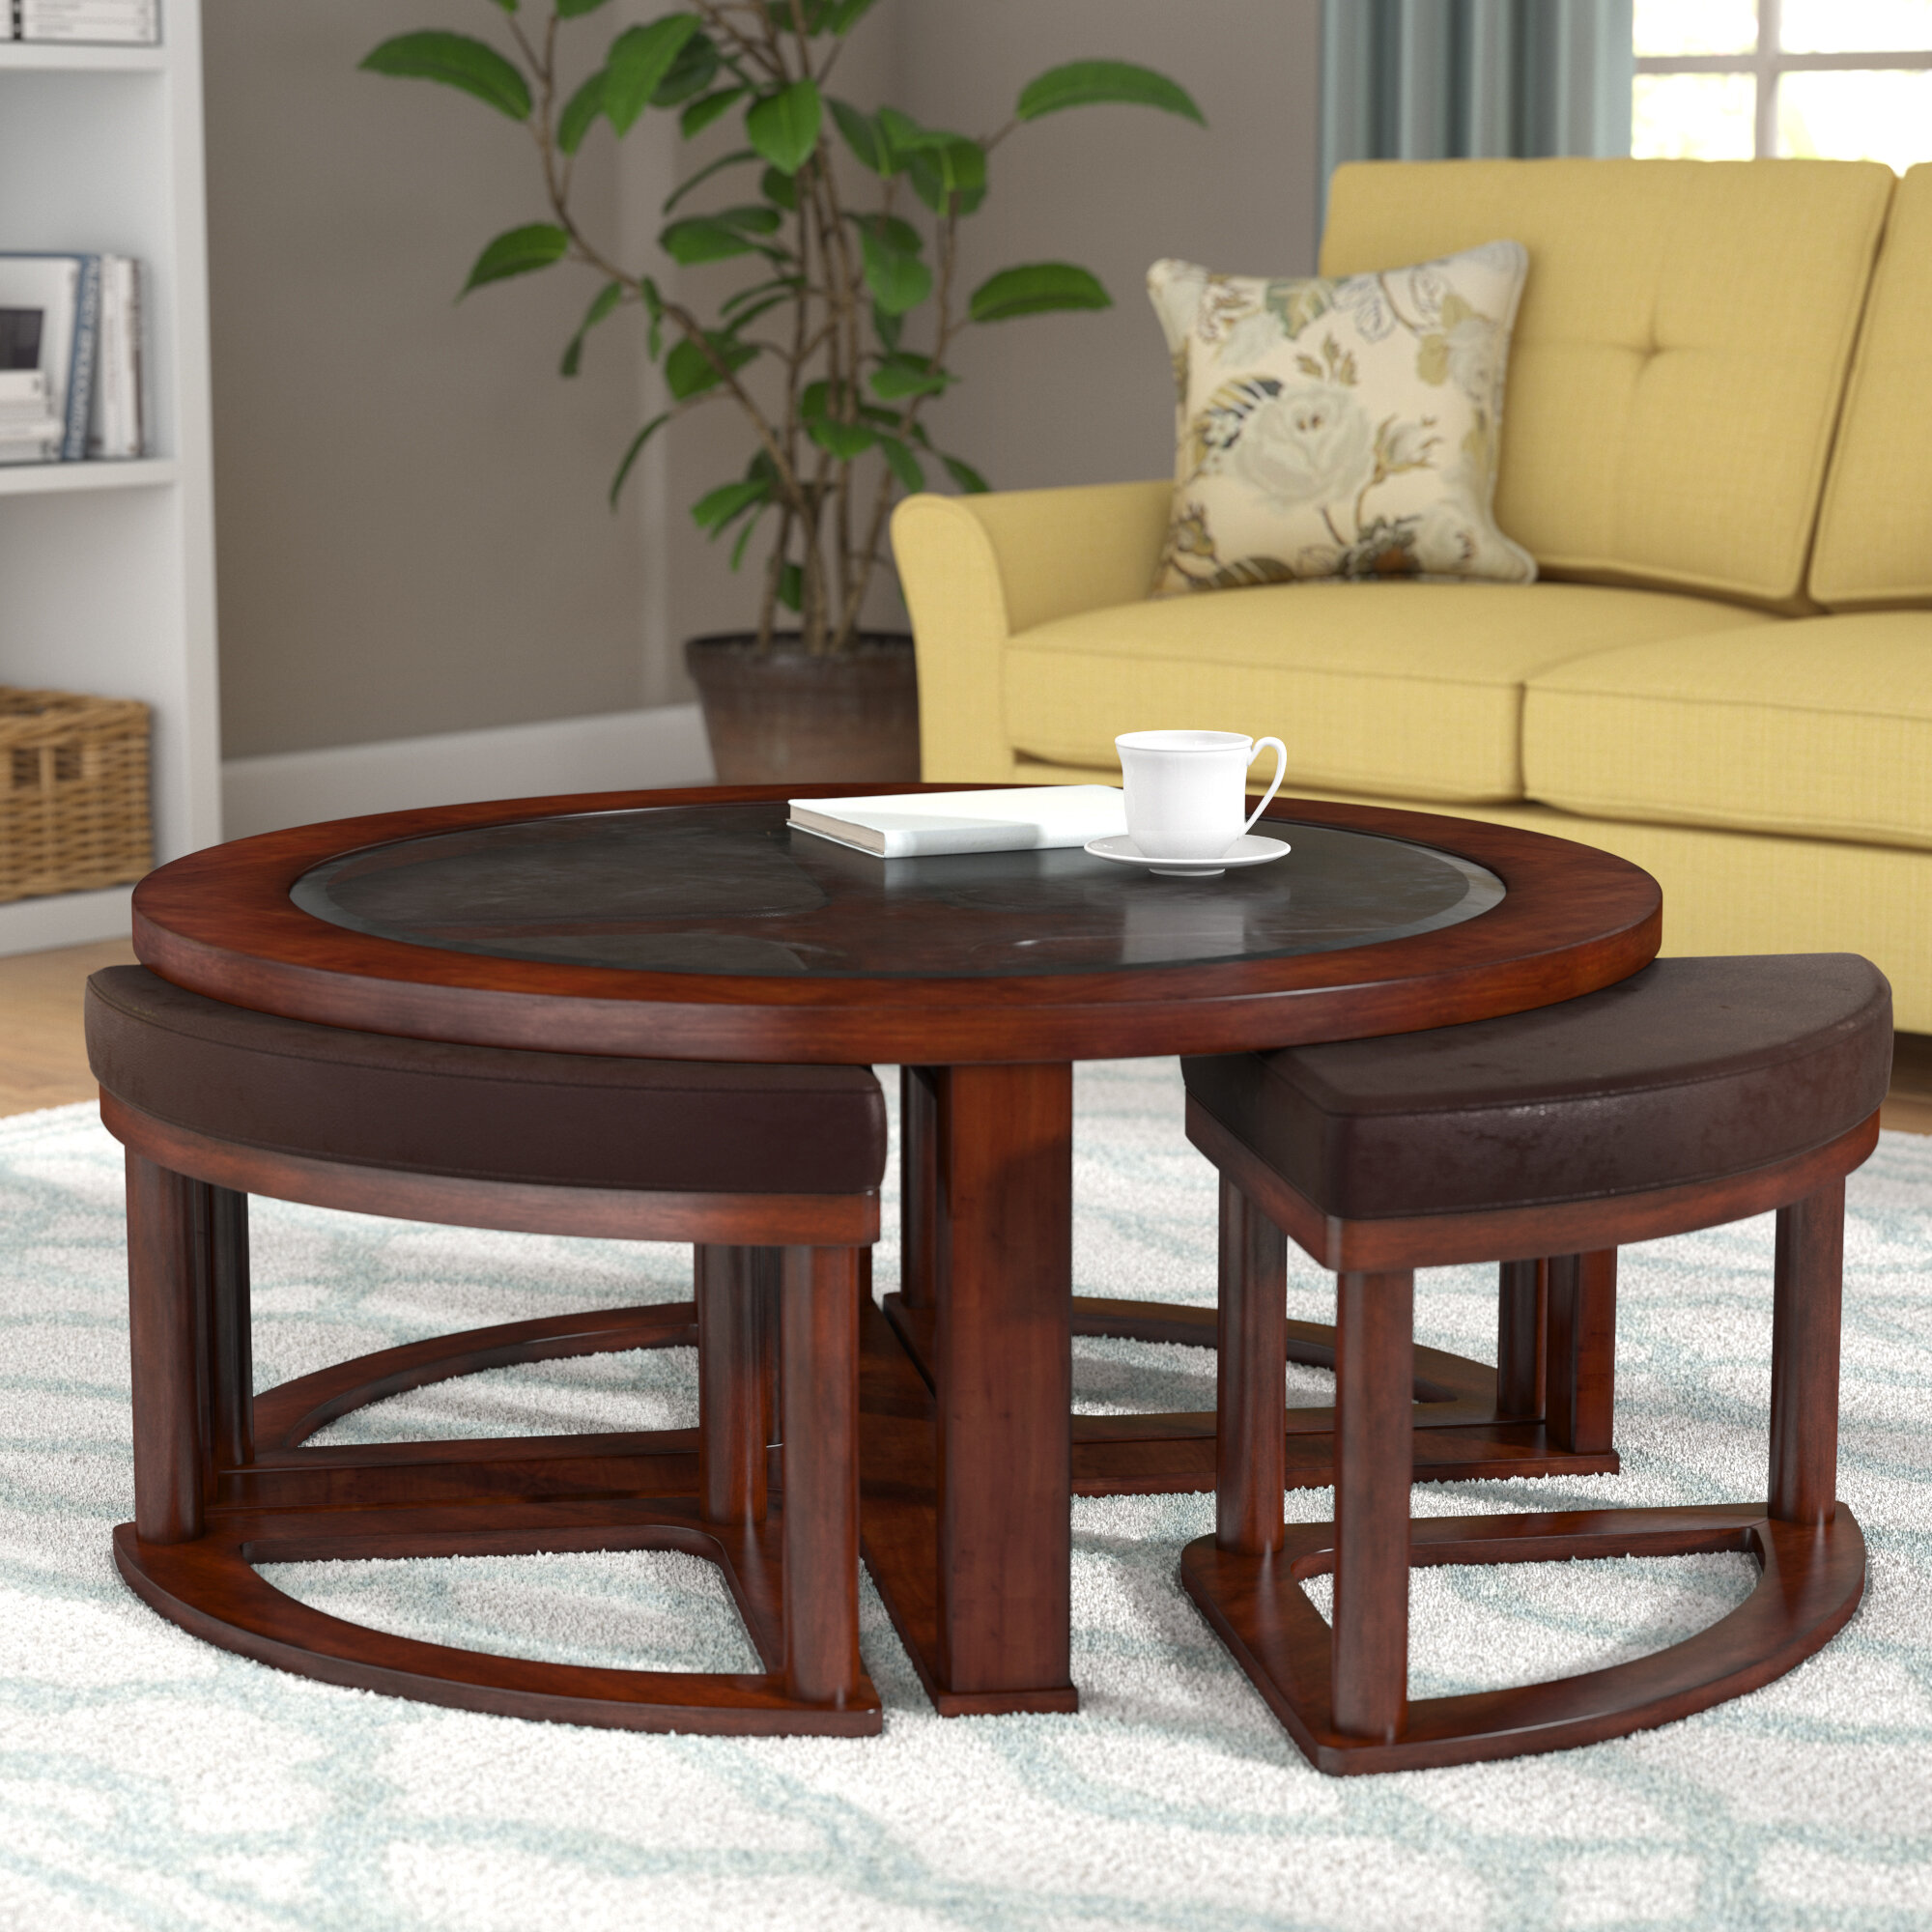 Coffee Table With Stools.Eastin Coffee Table With Nested Stools